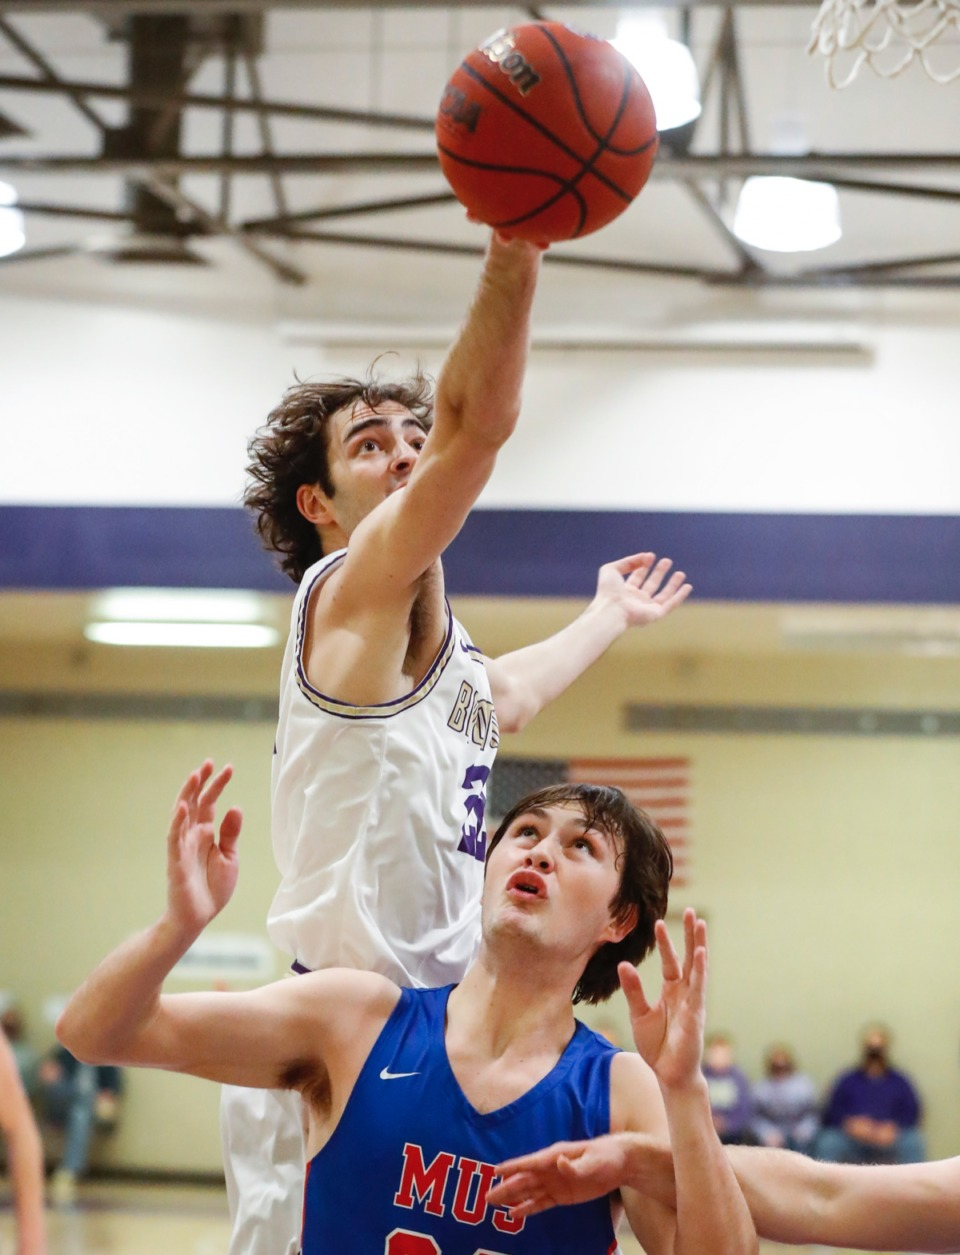 <strong>Christian Brothers forward Collin Scifres (top) battles MUS&rsquo; Gavin Murrey (bottom) for a rebound on Tuesday, Feb. 9, 2021.</strong> (Mark Weber/The Daily Memphian)